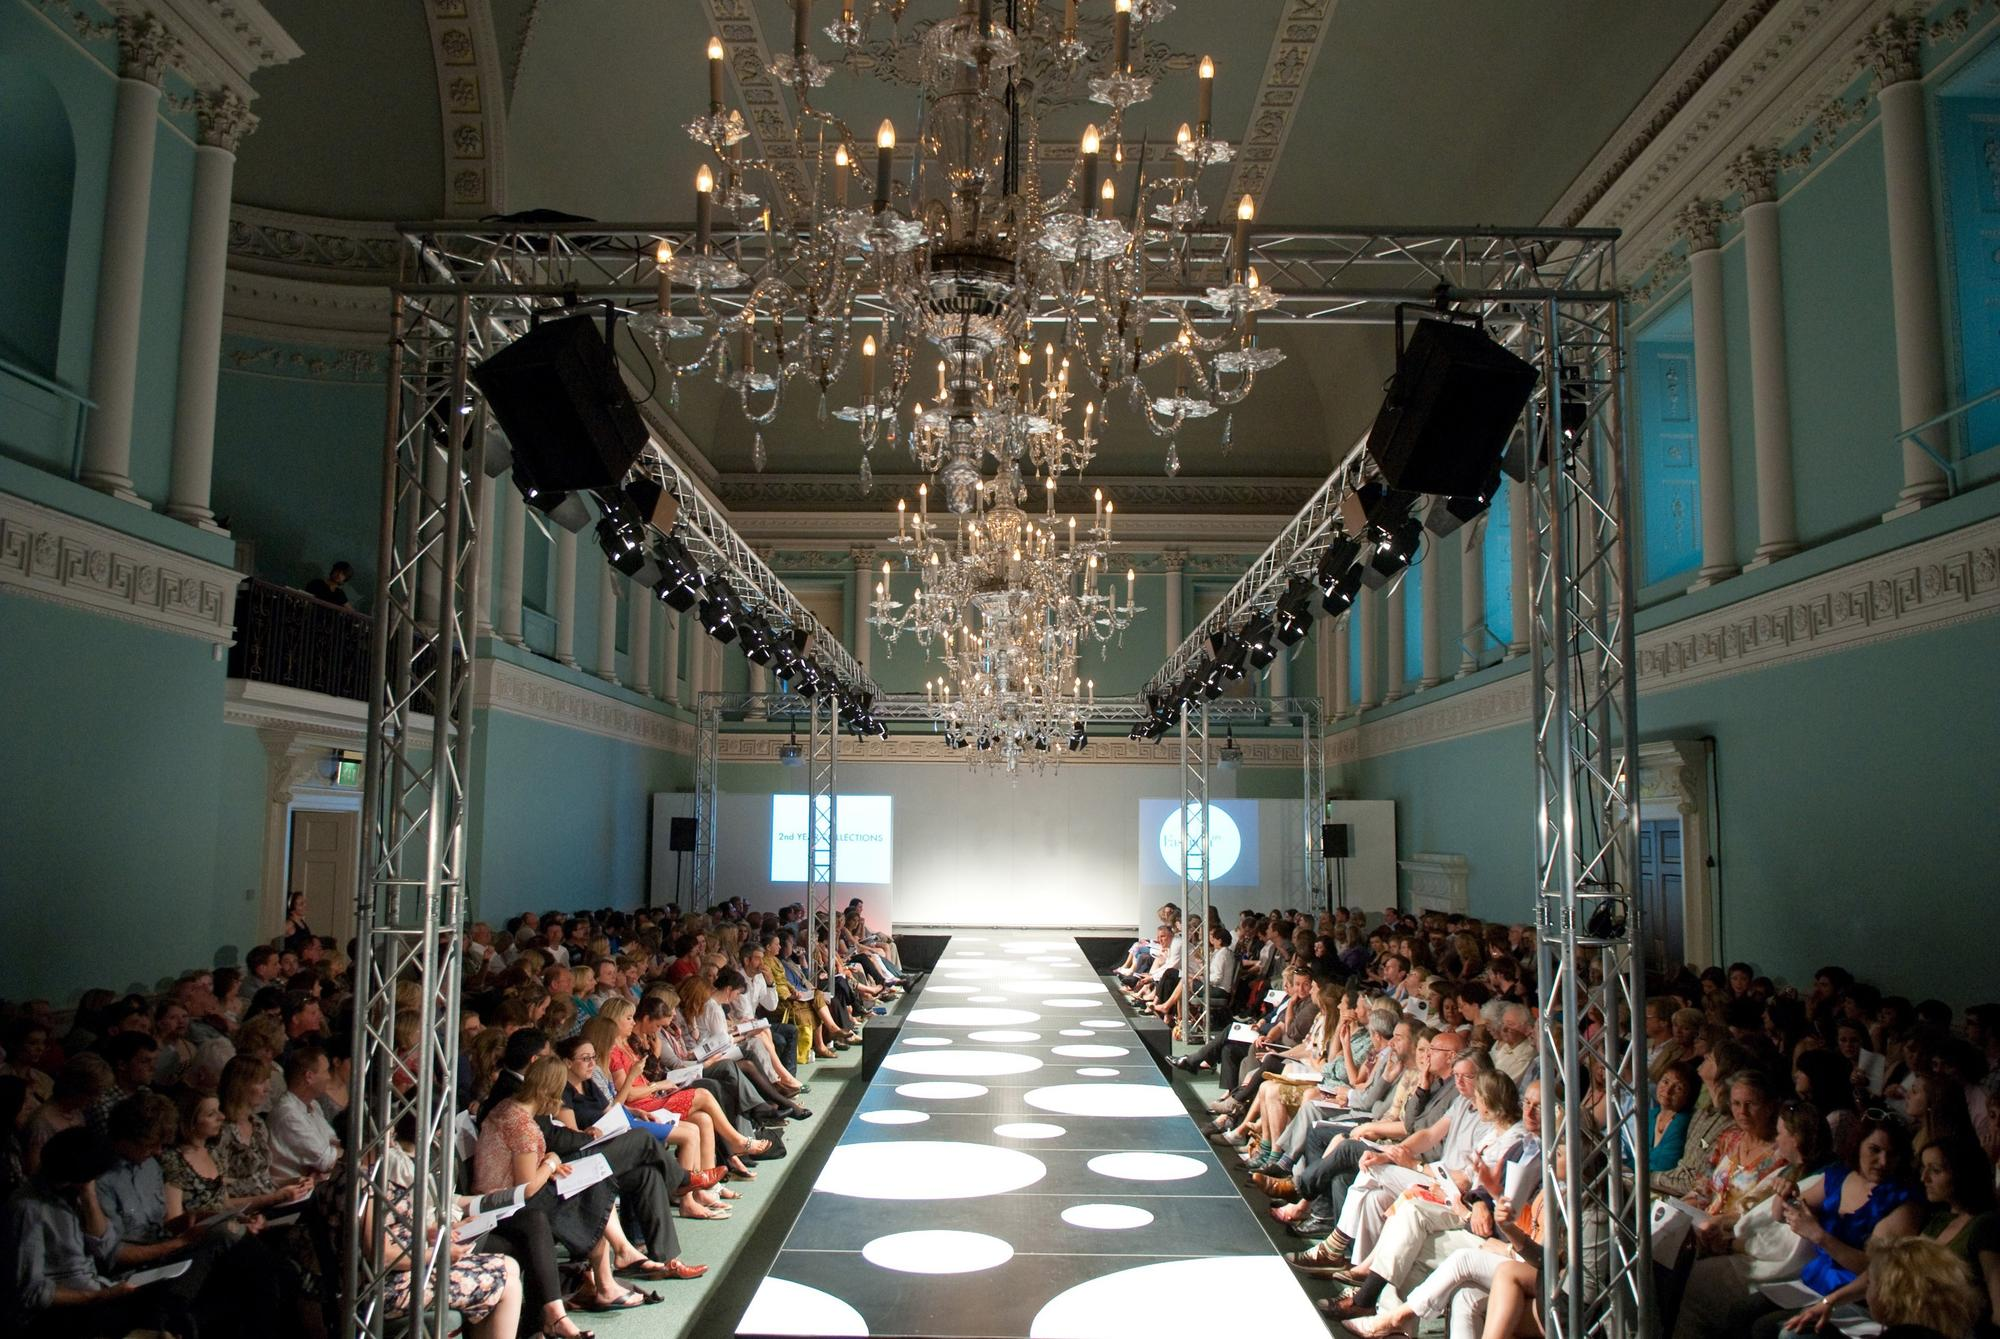 Bath in Fashion - Ballroom at the Assembly Rooms